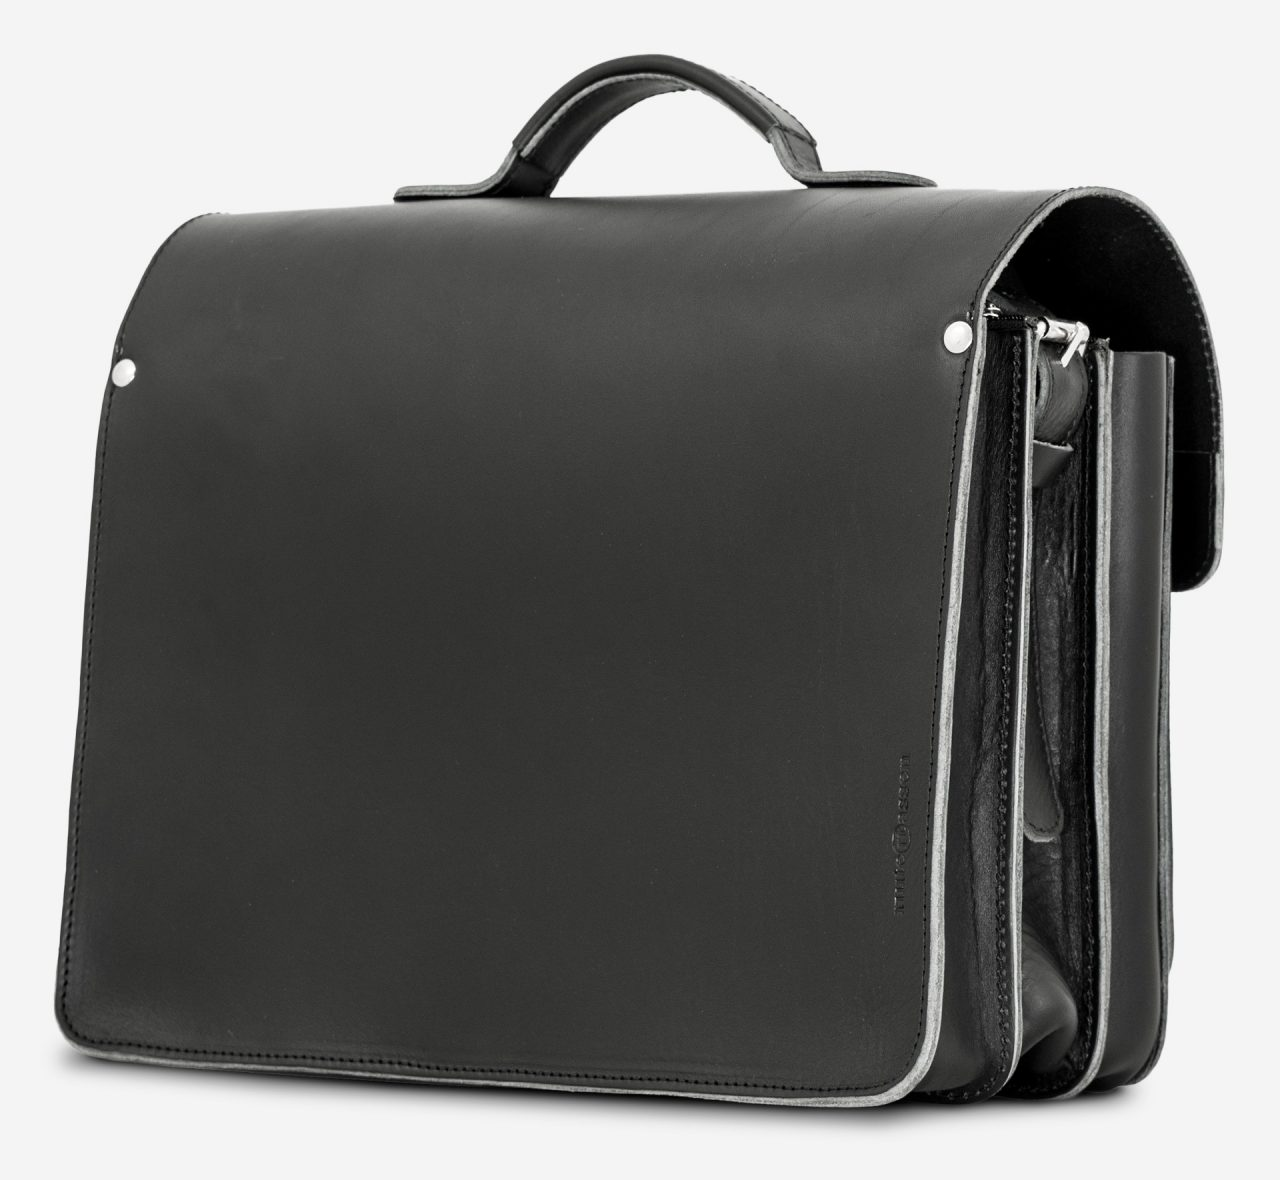 Back view of large black leather briefcase with 3 compartments and asymmetric front pockets 112142.